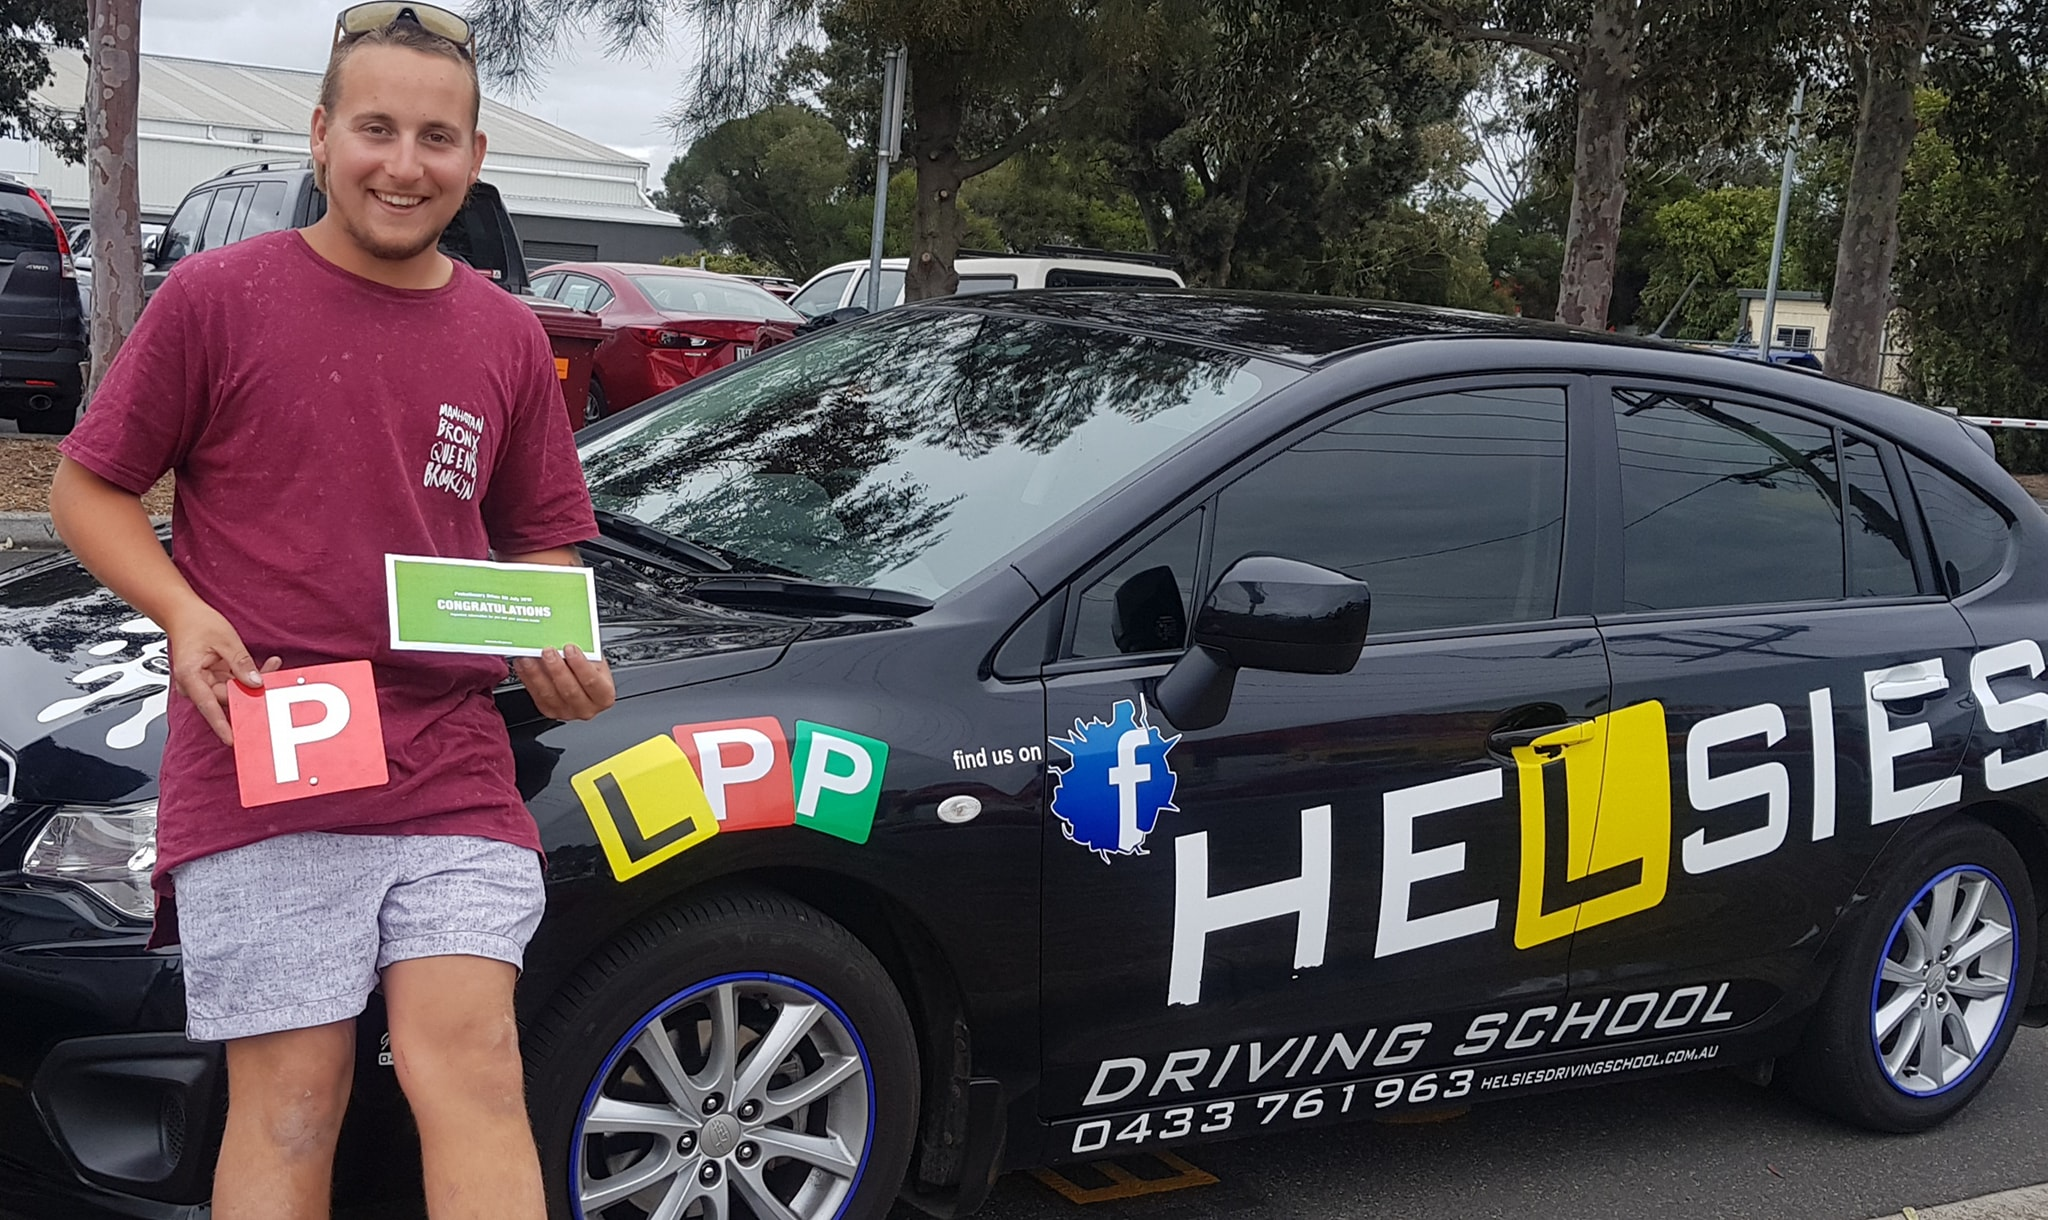 Helsie's Driving School